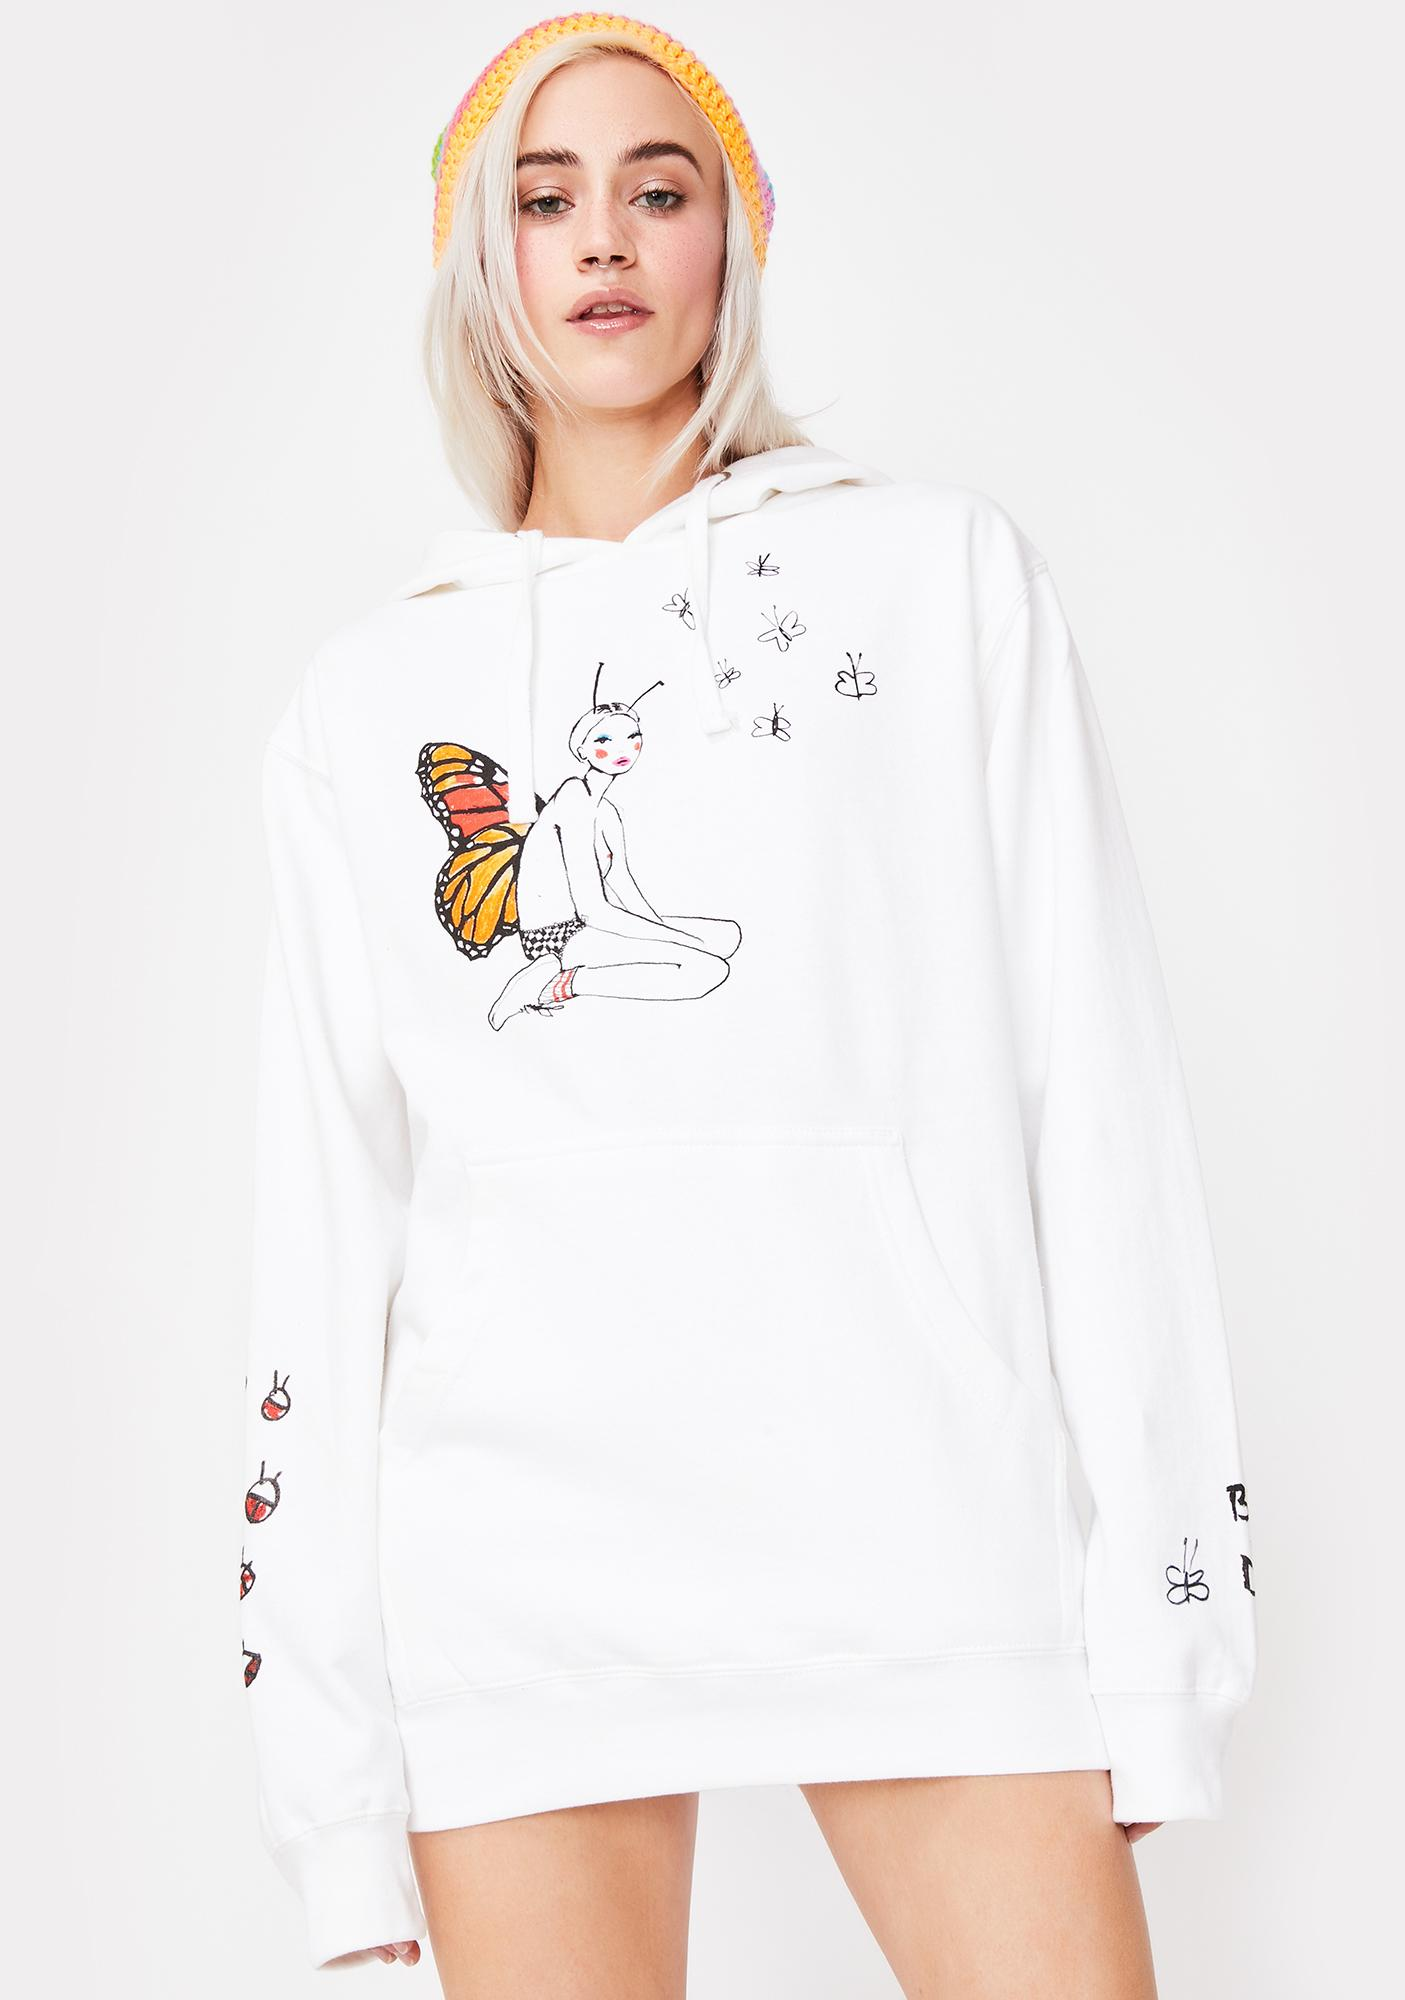 By Samii Ryan X Dessie Jackson Monarch Graphic Hoodie